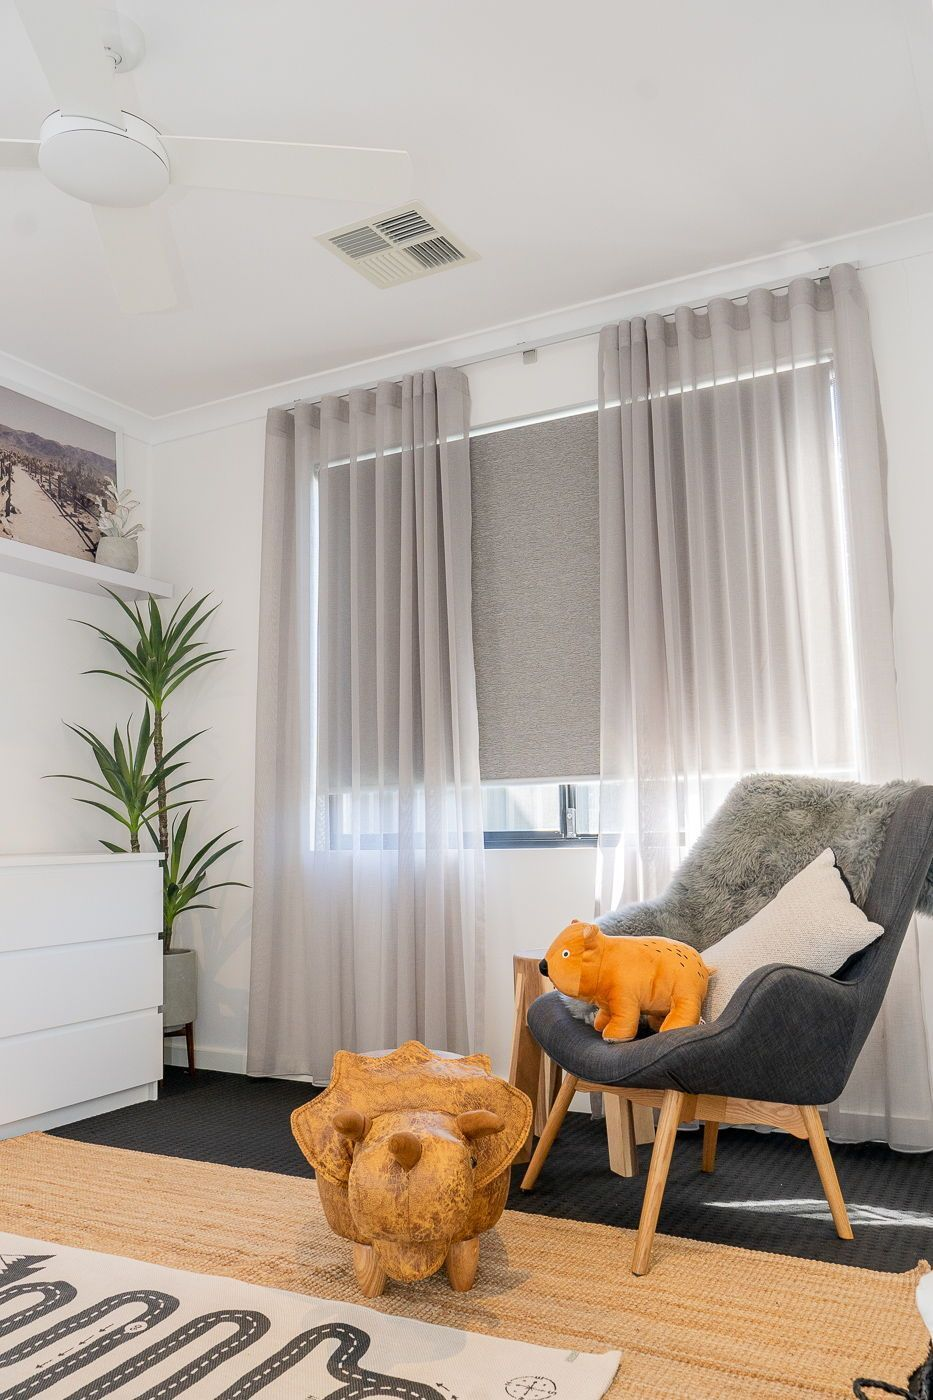 Custom Made Curtains Blinds Shutters In Perth Curtainworld In 2020 Sheers Curtains Living Room Home Curtains Curtains And Blinds Together